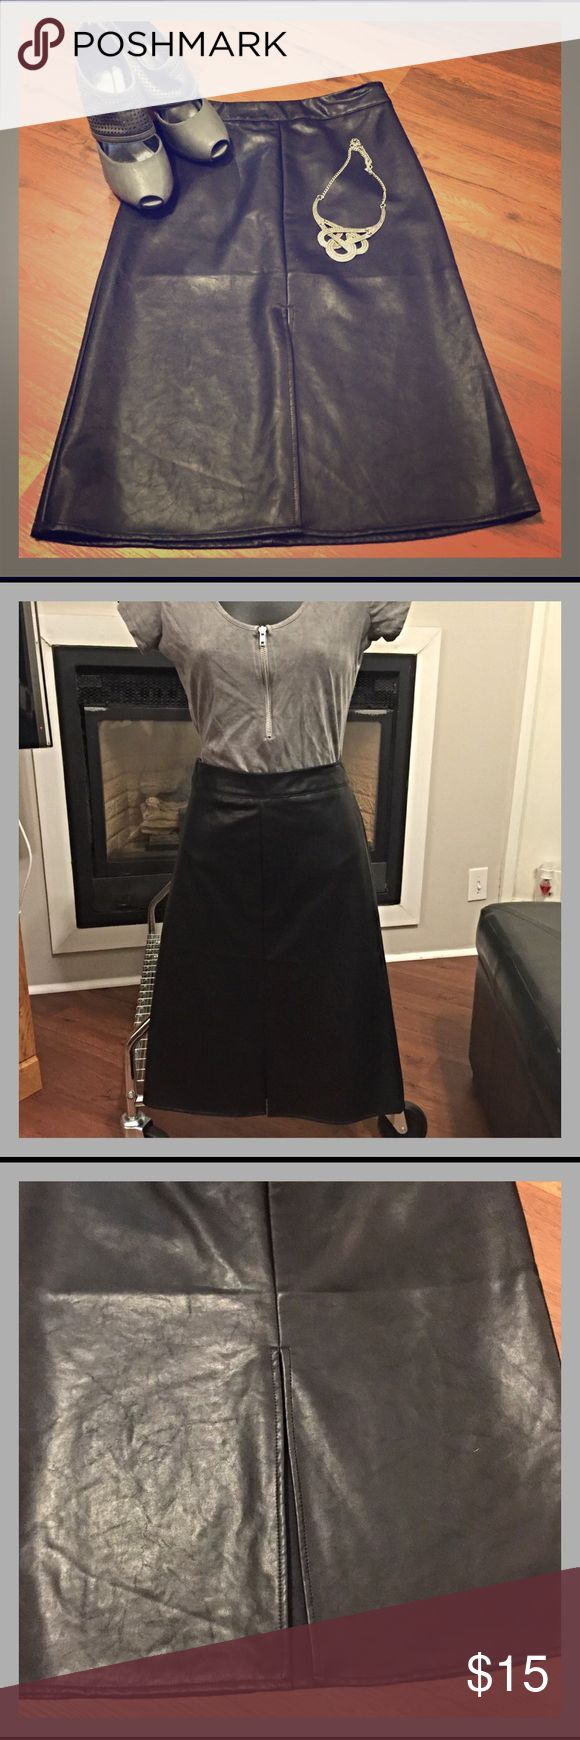 F21 NWOT Faux Leather A Line Skirt F21 NWOT - never worn. A line with a front slit.  She'll is 100% rayon.  Lining is 90% polyester, 10% spandex.  🌟 TOP RATED SELLER 🌟 FAST SHIPPER 🌟 Forever 21 Skirts A-Line or Full